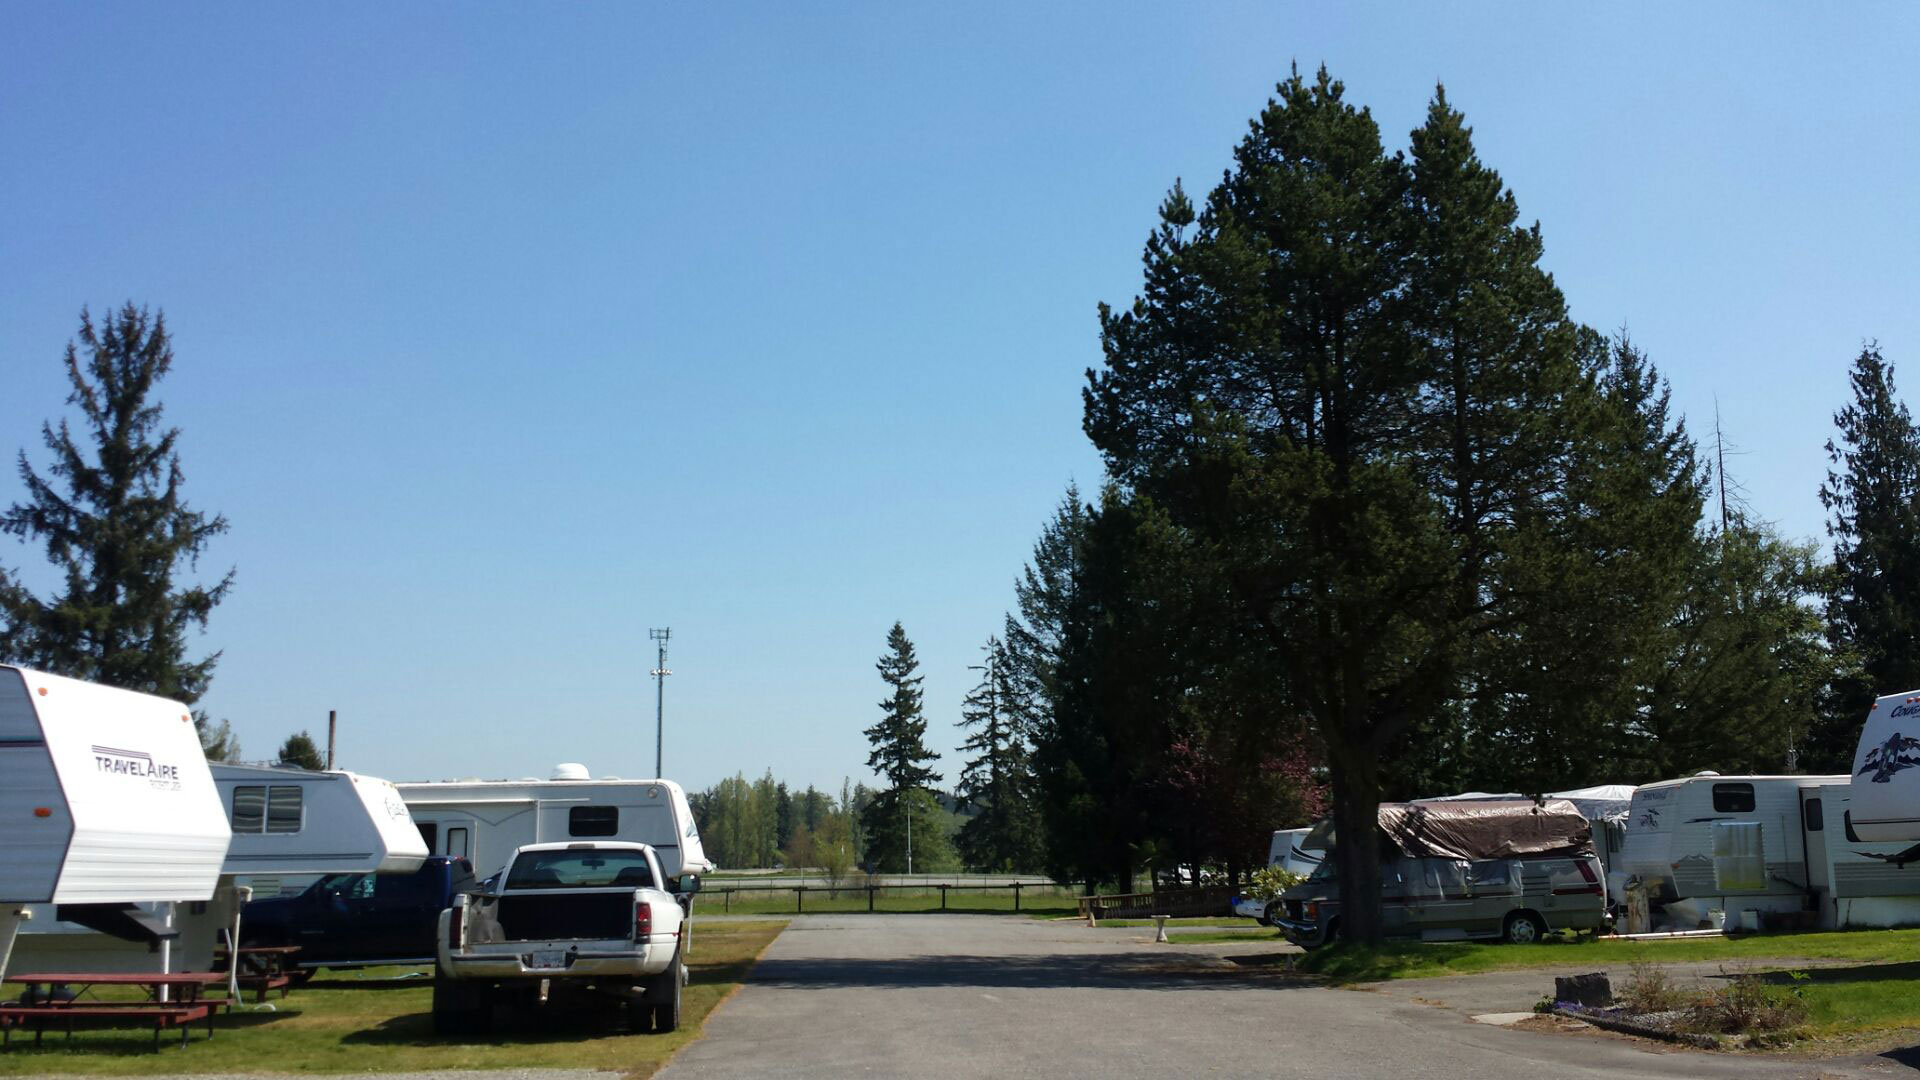 Livingstone RV Park Formerly Campsite Trailer Is Located At 23141 72nd Ave In Langley BC Between 232nd St And